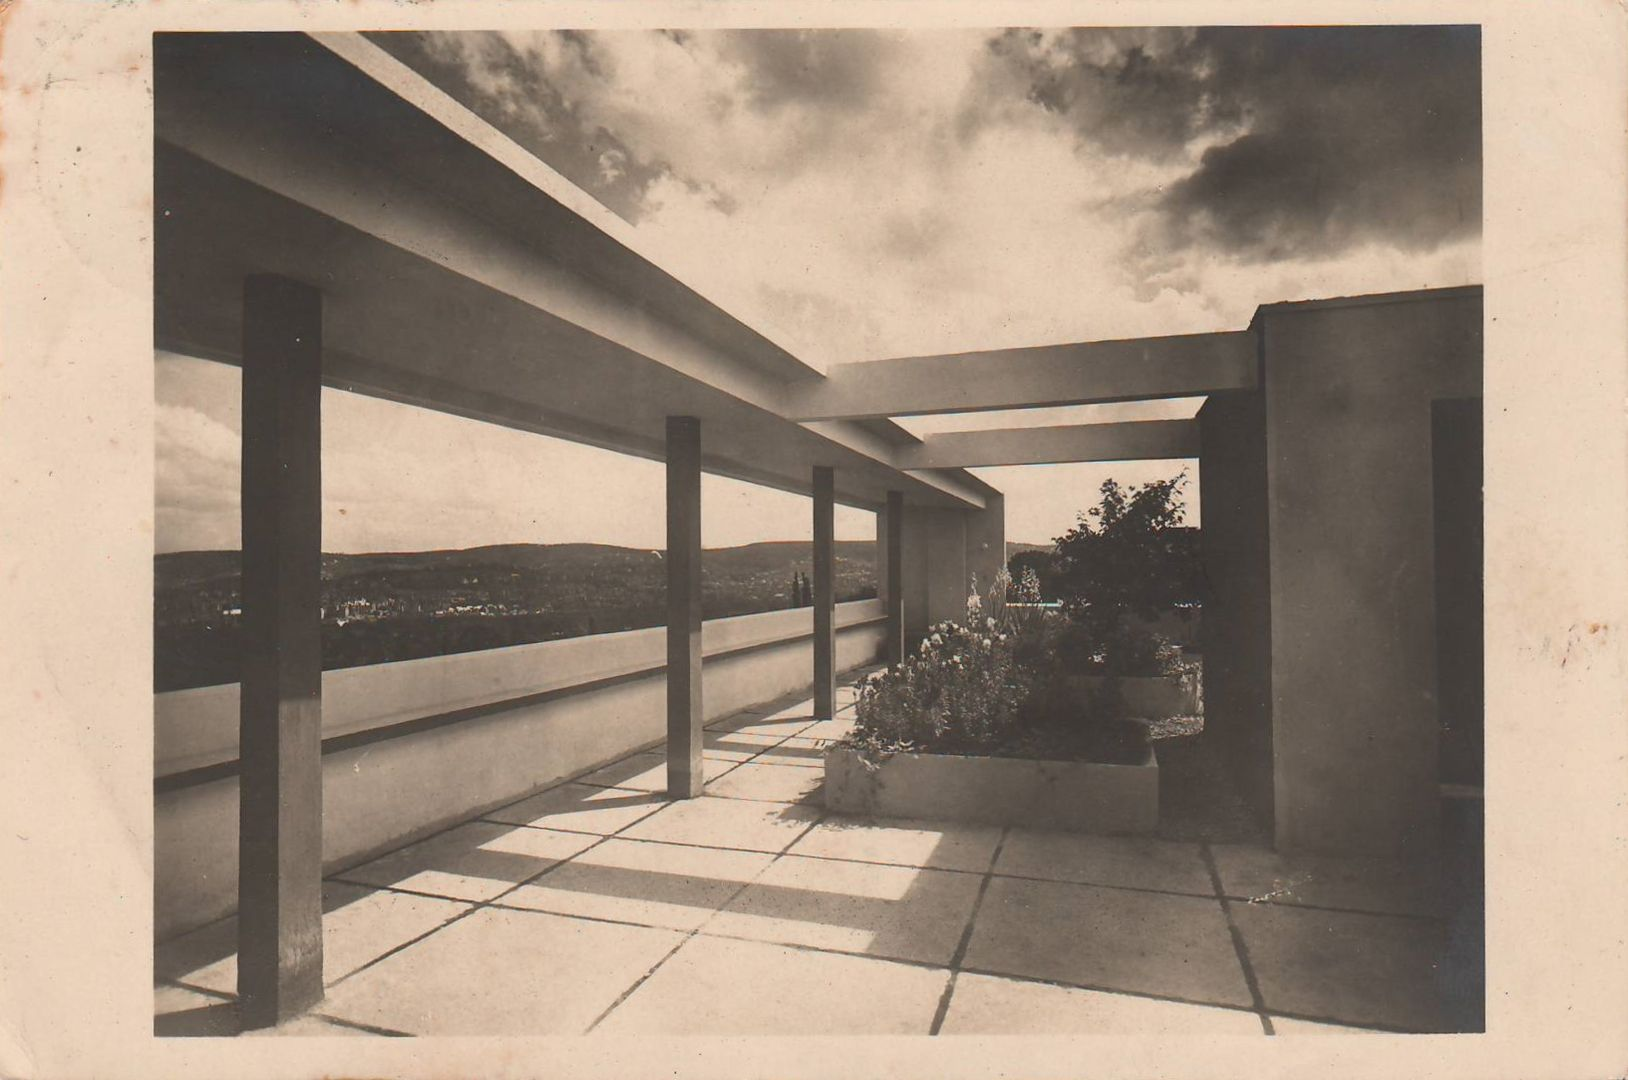 Le Corbusier - Dachterrasse, Haus am Weissenhofsiedlung, Stuttgart (Roof terrace, Home at the Weissenhof Housing Development, Stuttgart), 1927 (Photo: Otto Lossen)